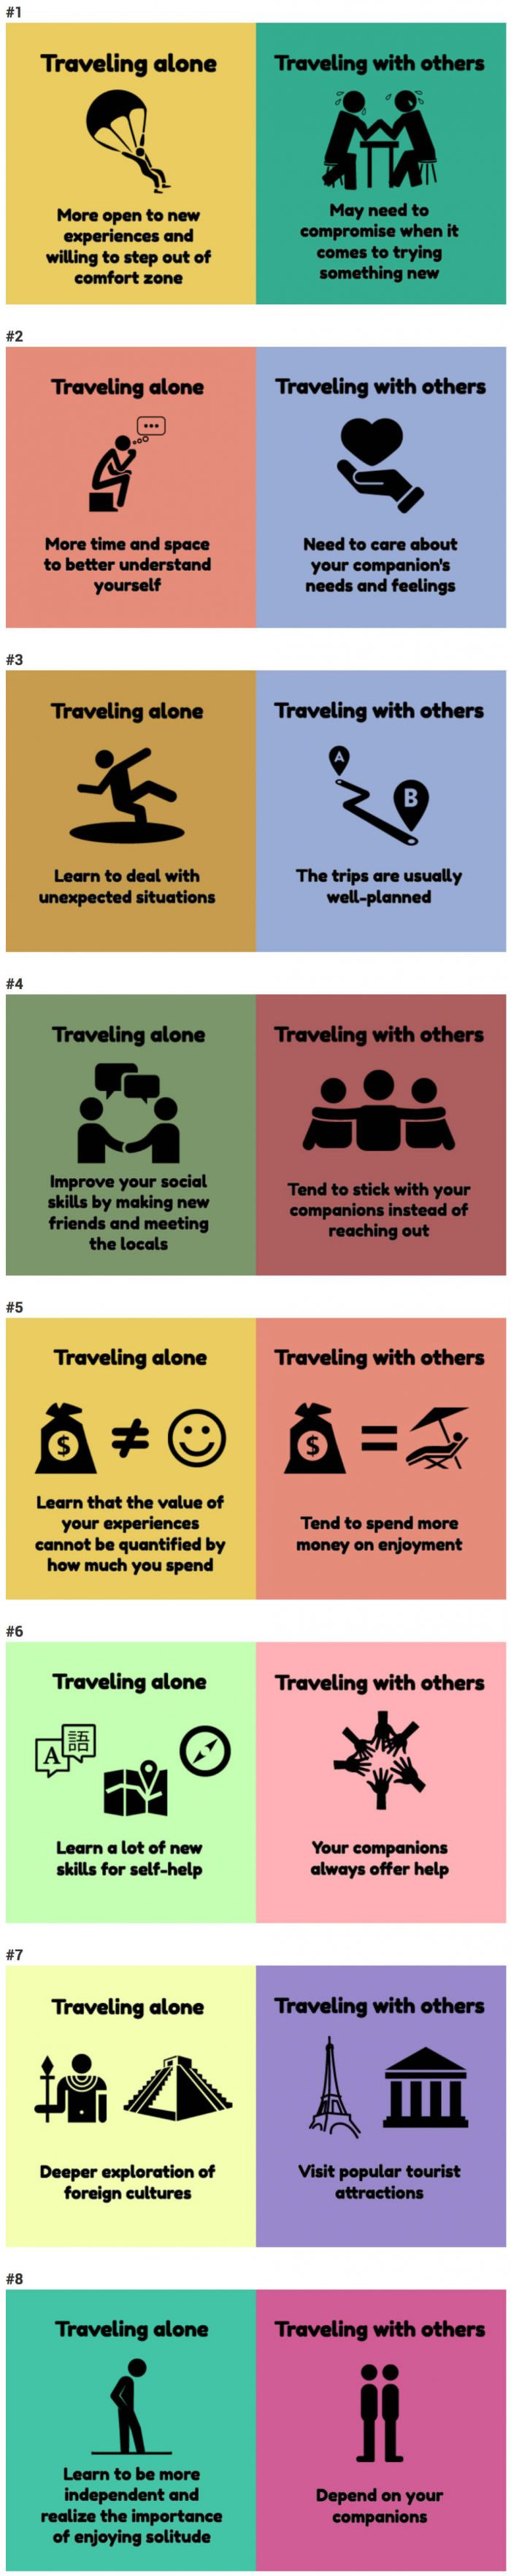 8 Illustrations Explaining Why Traveling Alone Is An Irreplaceable Learning Experience - 9GAG